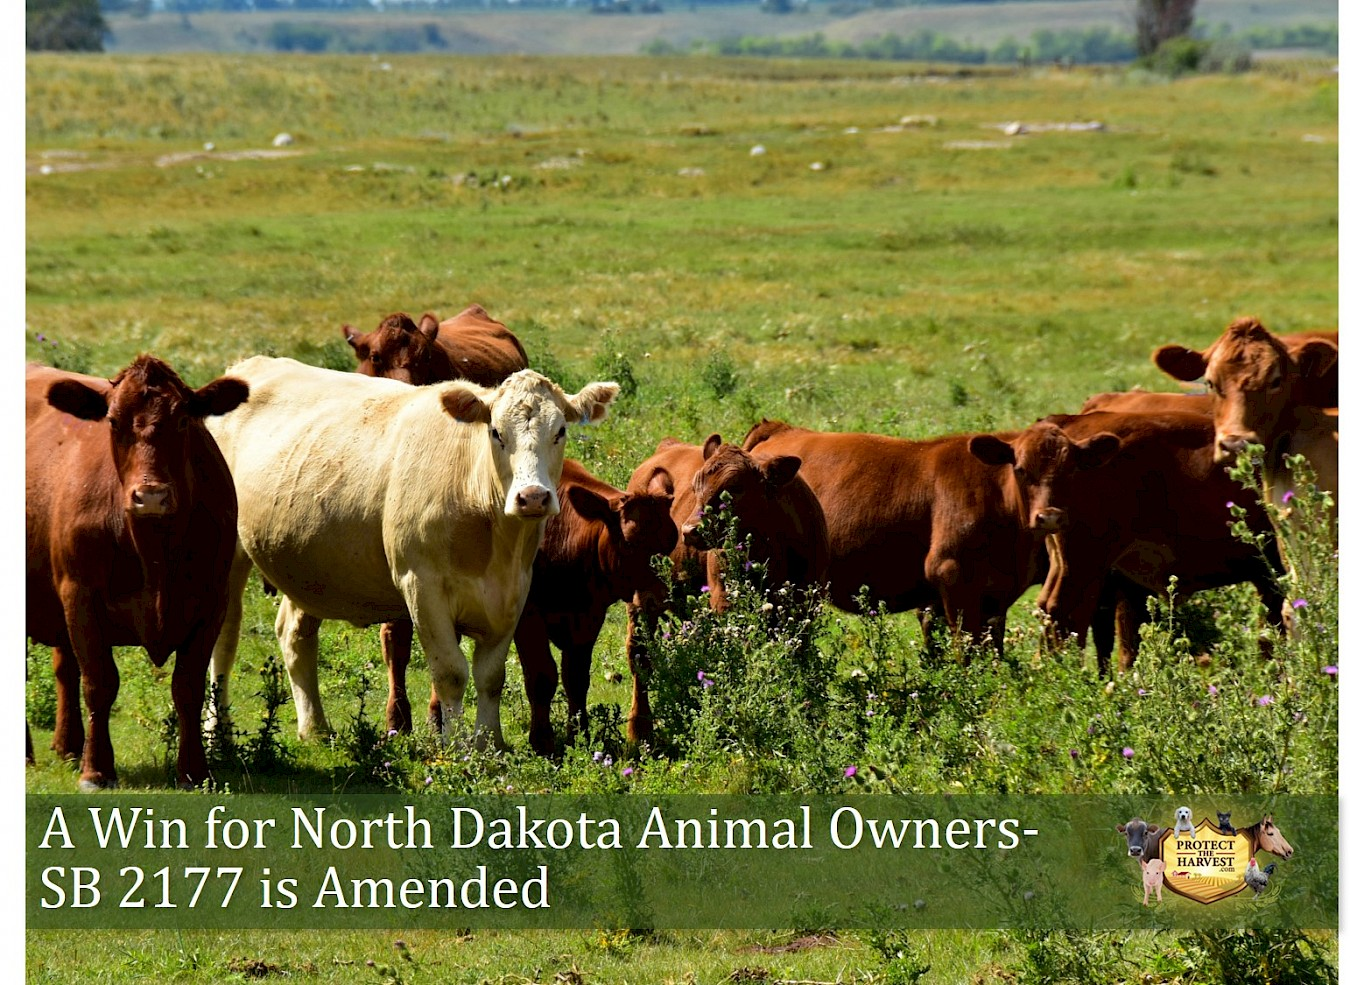 A Win For North Dakota Animal Owners - SB2177 is Amended